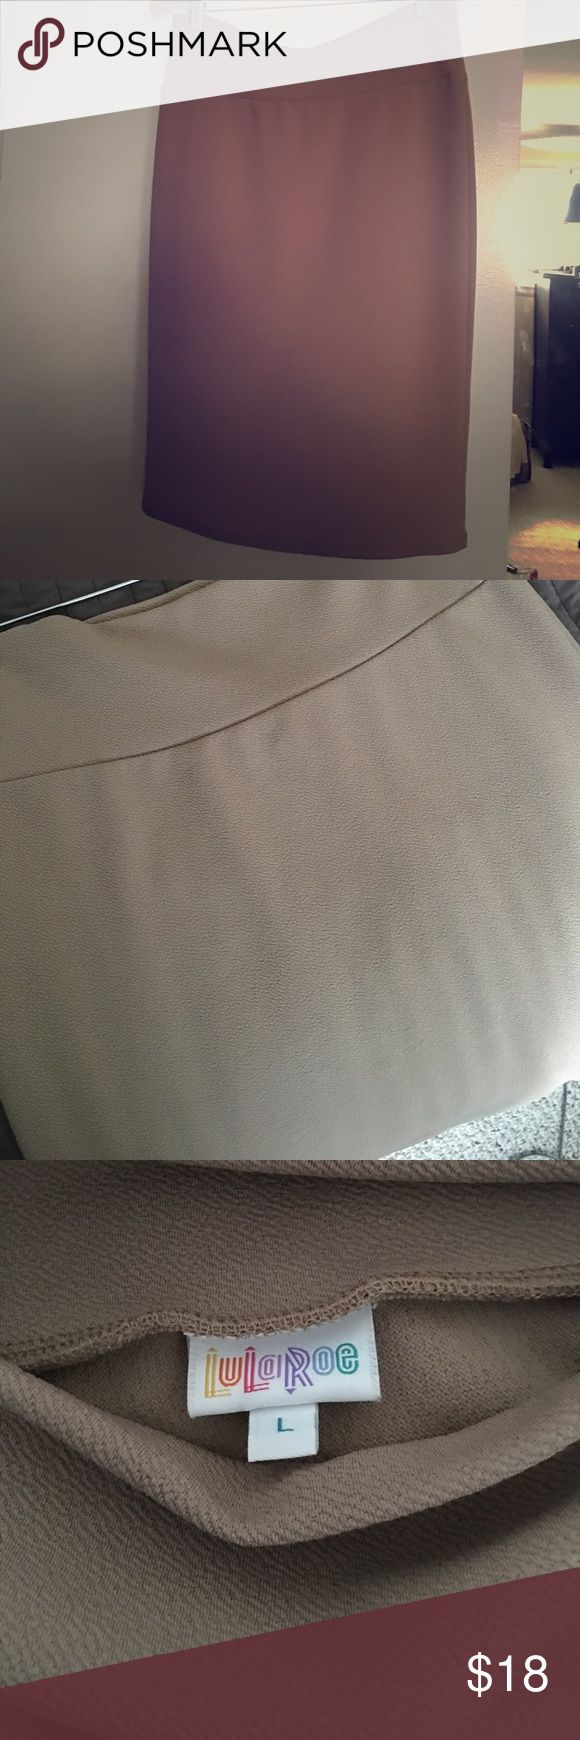 """Khaki pencil skirt LLR *never worn This LuLaRoe khaki pencil is wonderful as I love how light weight it is.  It didn't work with what I bought it for and I washed it in cold water and hung it dry thinking I would wear it and I never have, so it's practically brand new!!!!   Ribs slim through hips and hits just below the knee (5'4"""" tall). LuLaRoe Skirts Pencil"""